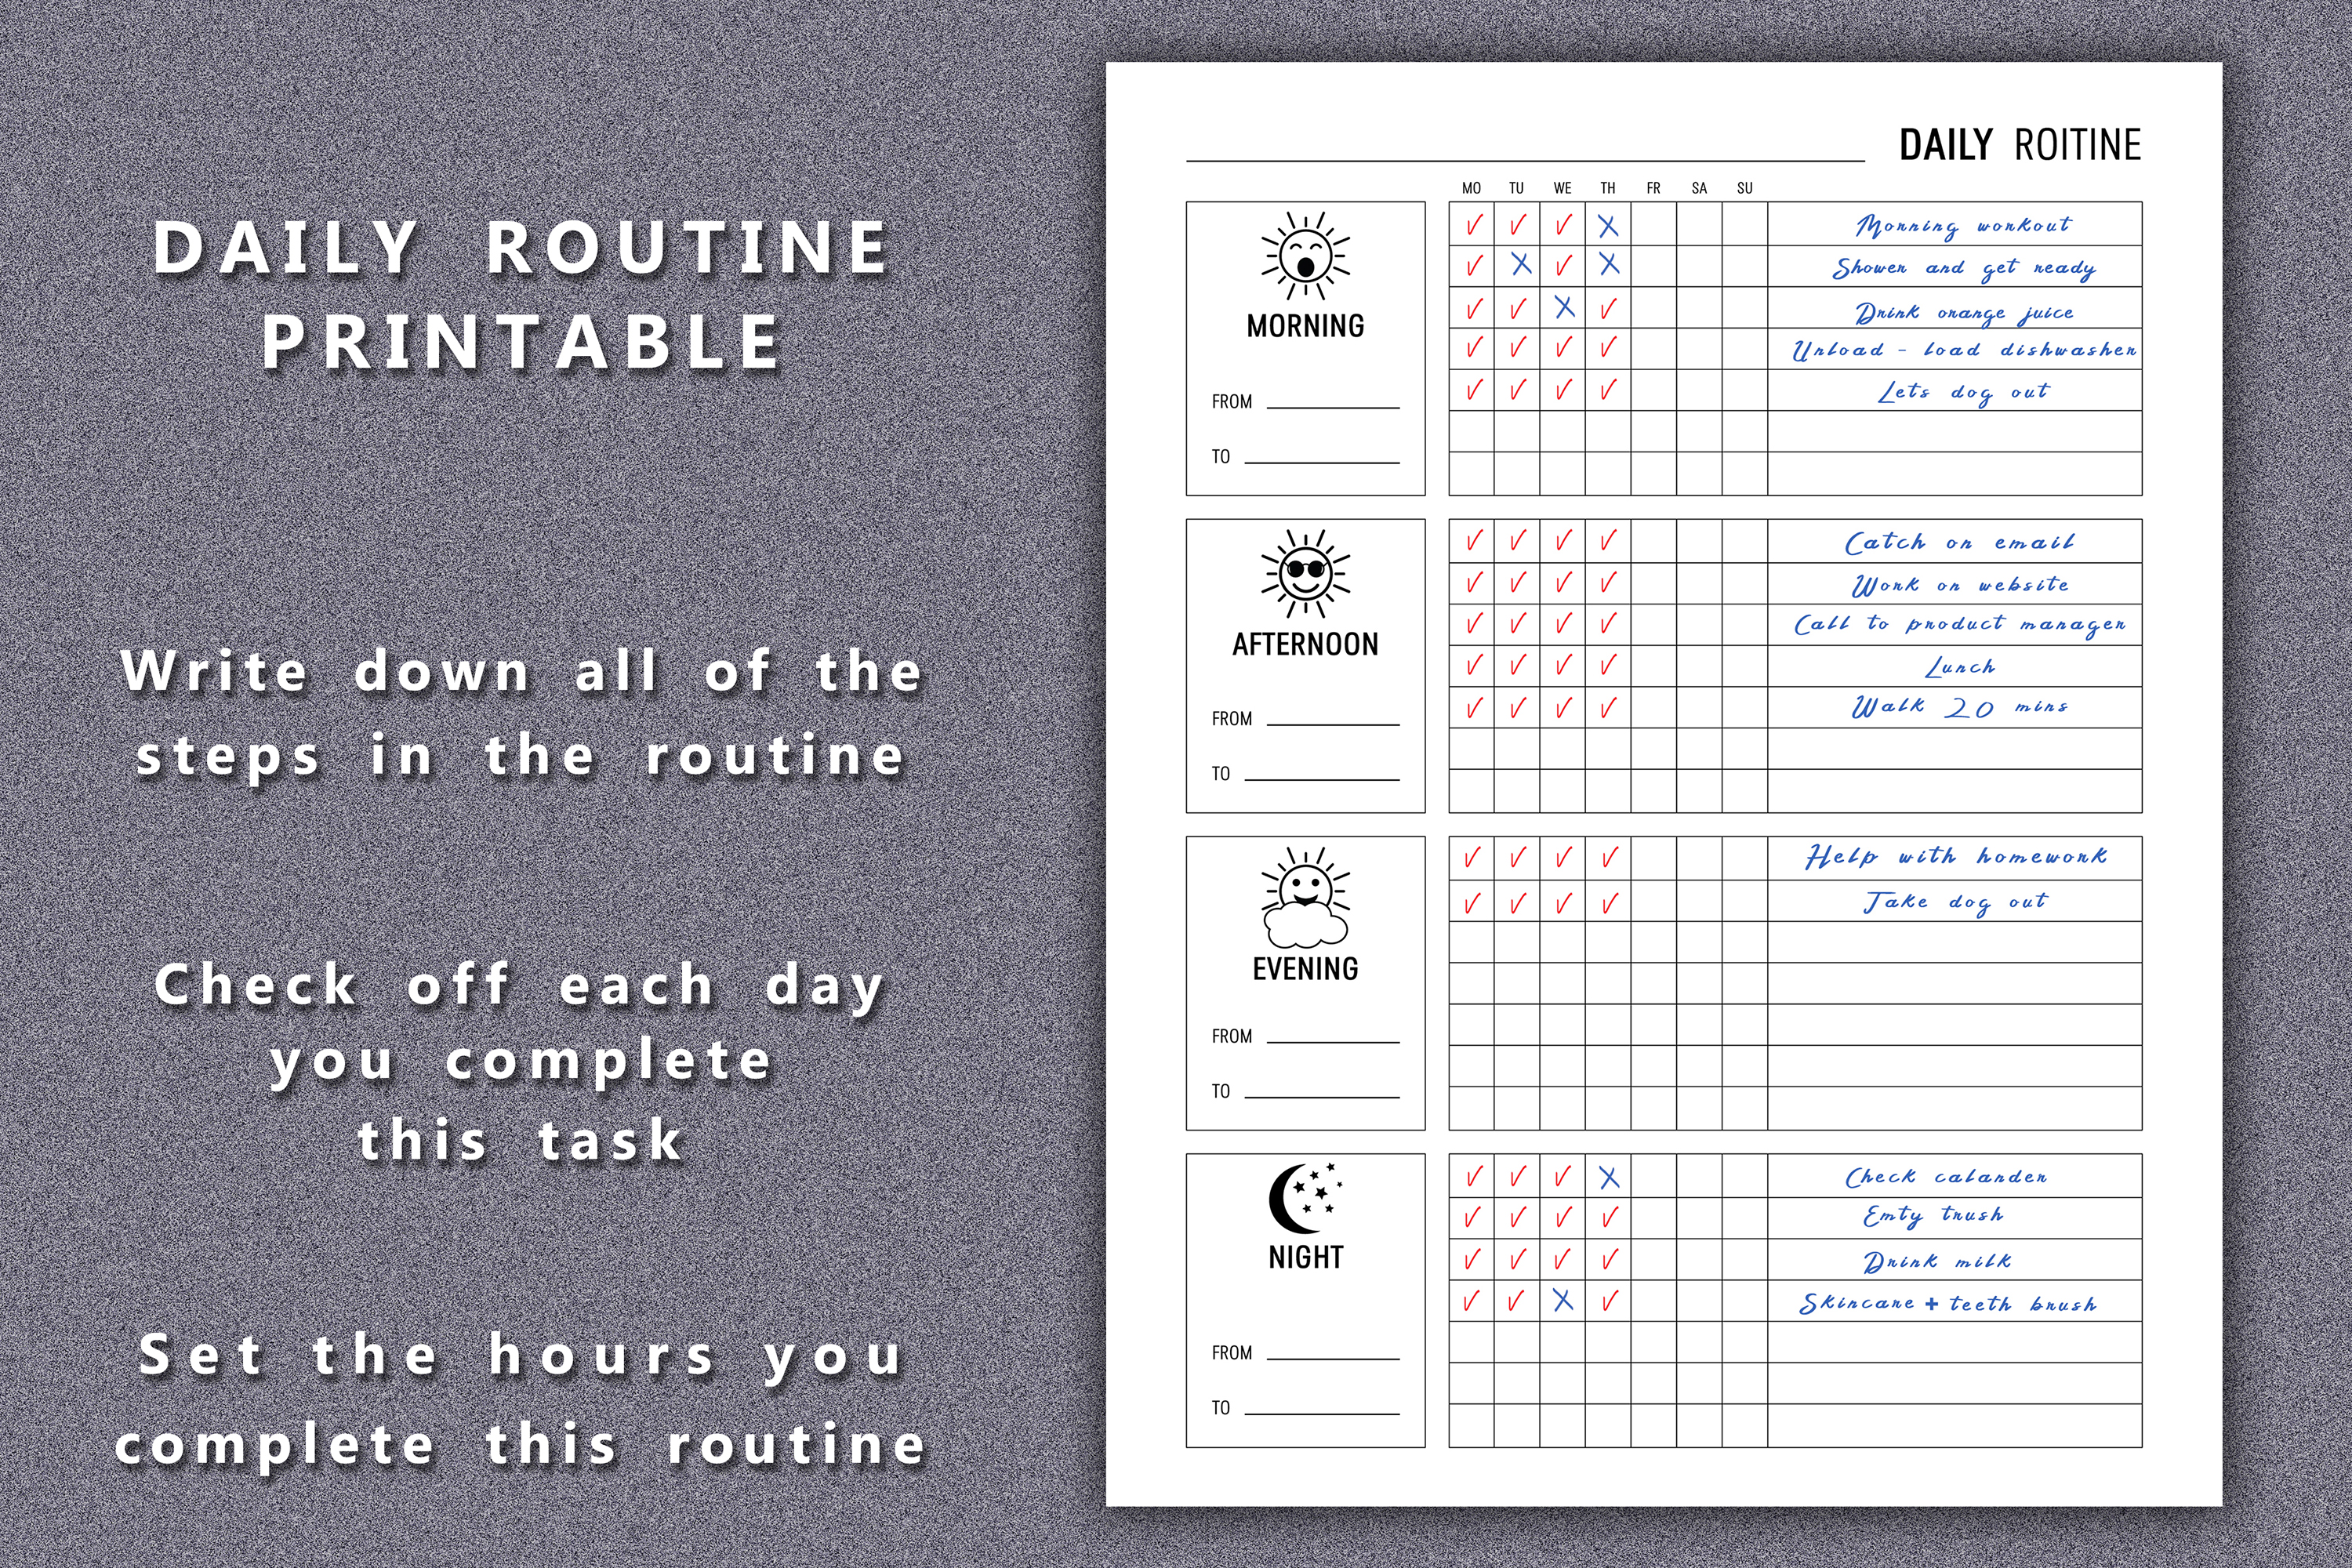 Daily Routine Planner Printable example image 4